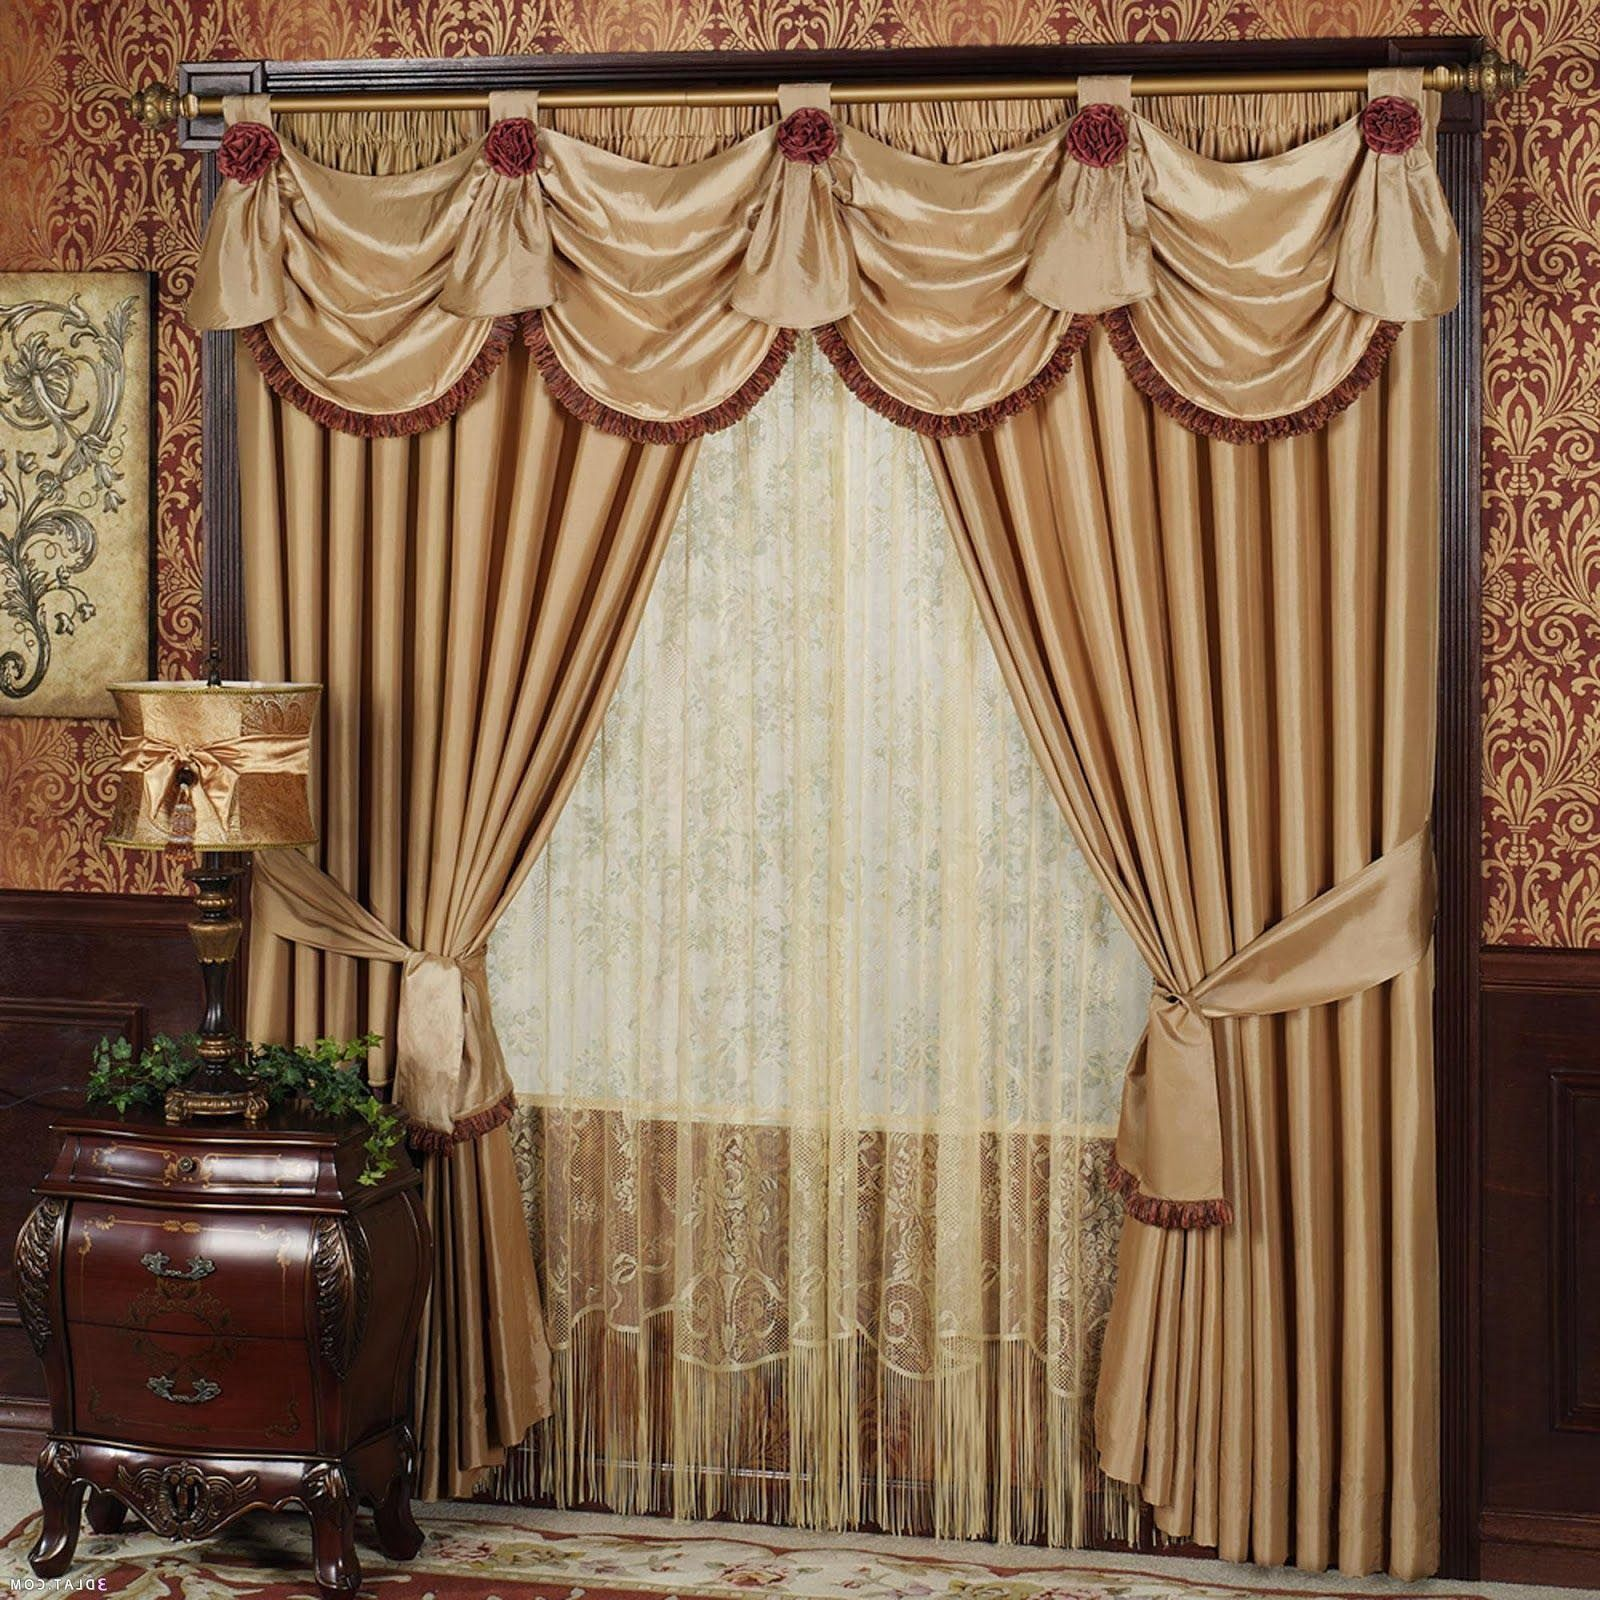 Living Room Curtain Design Impressive Living Room Drapes With Valances  Valances  Pinterest  Valance Decorating Inspiration